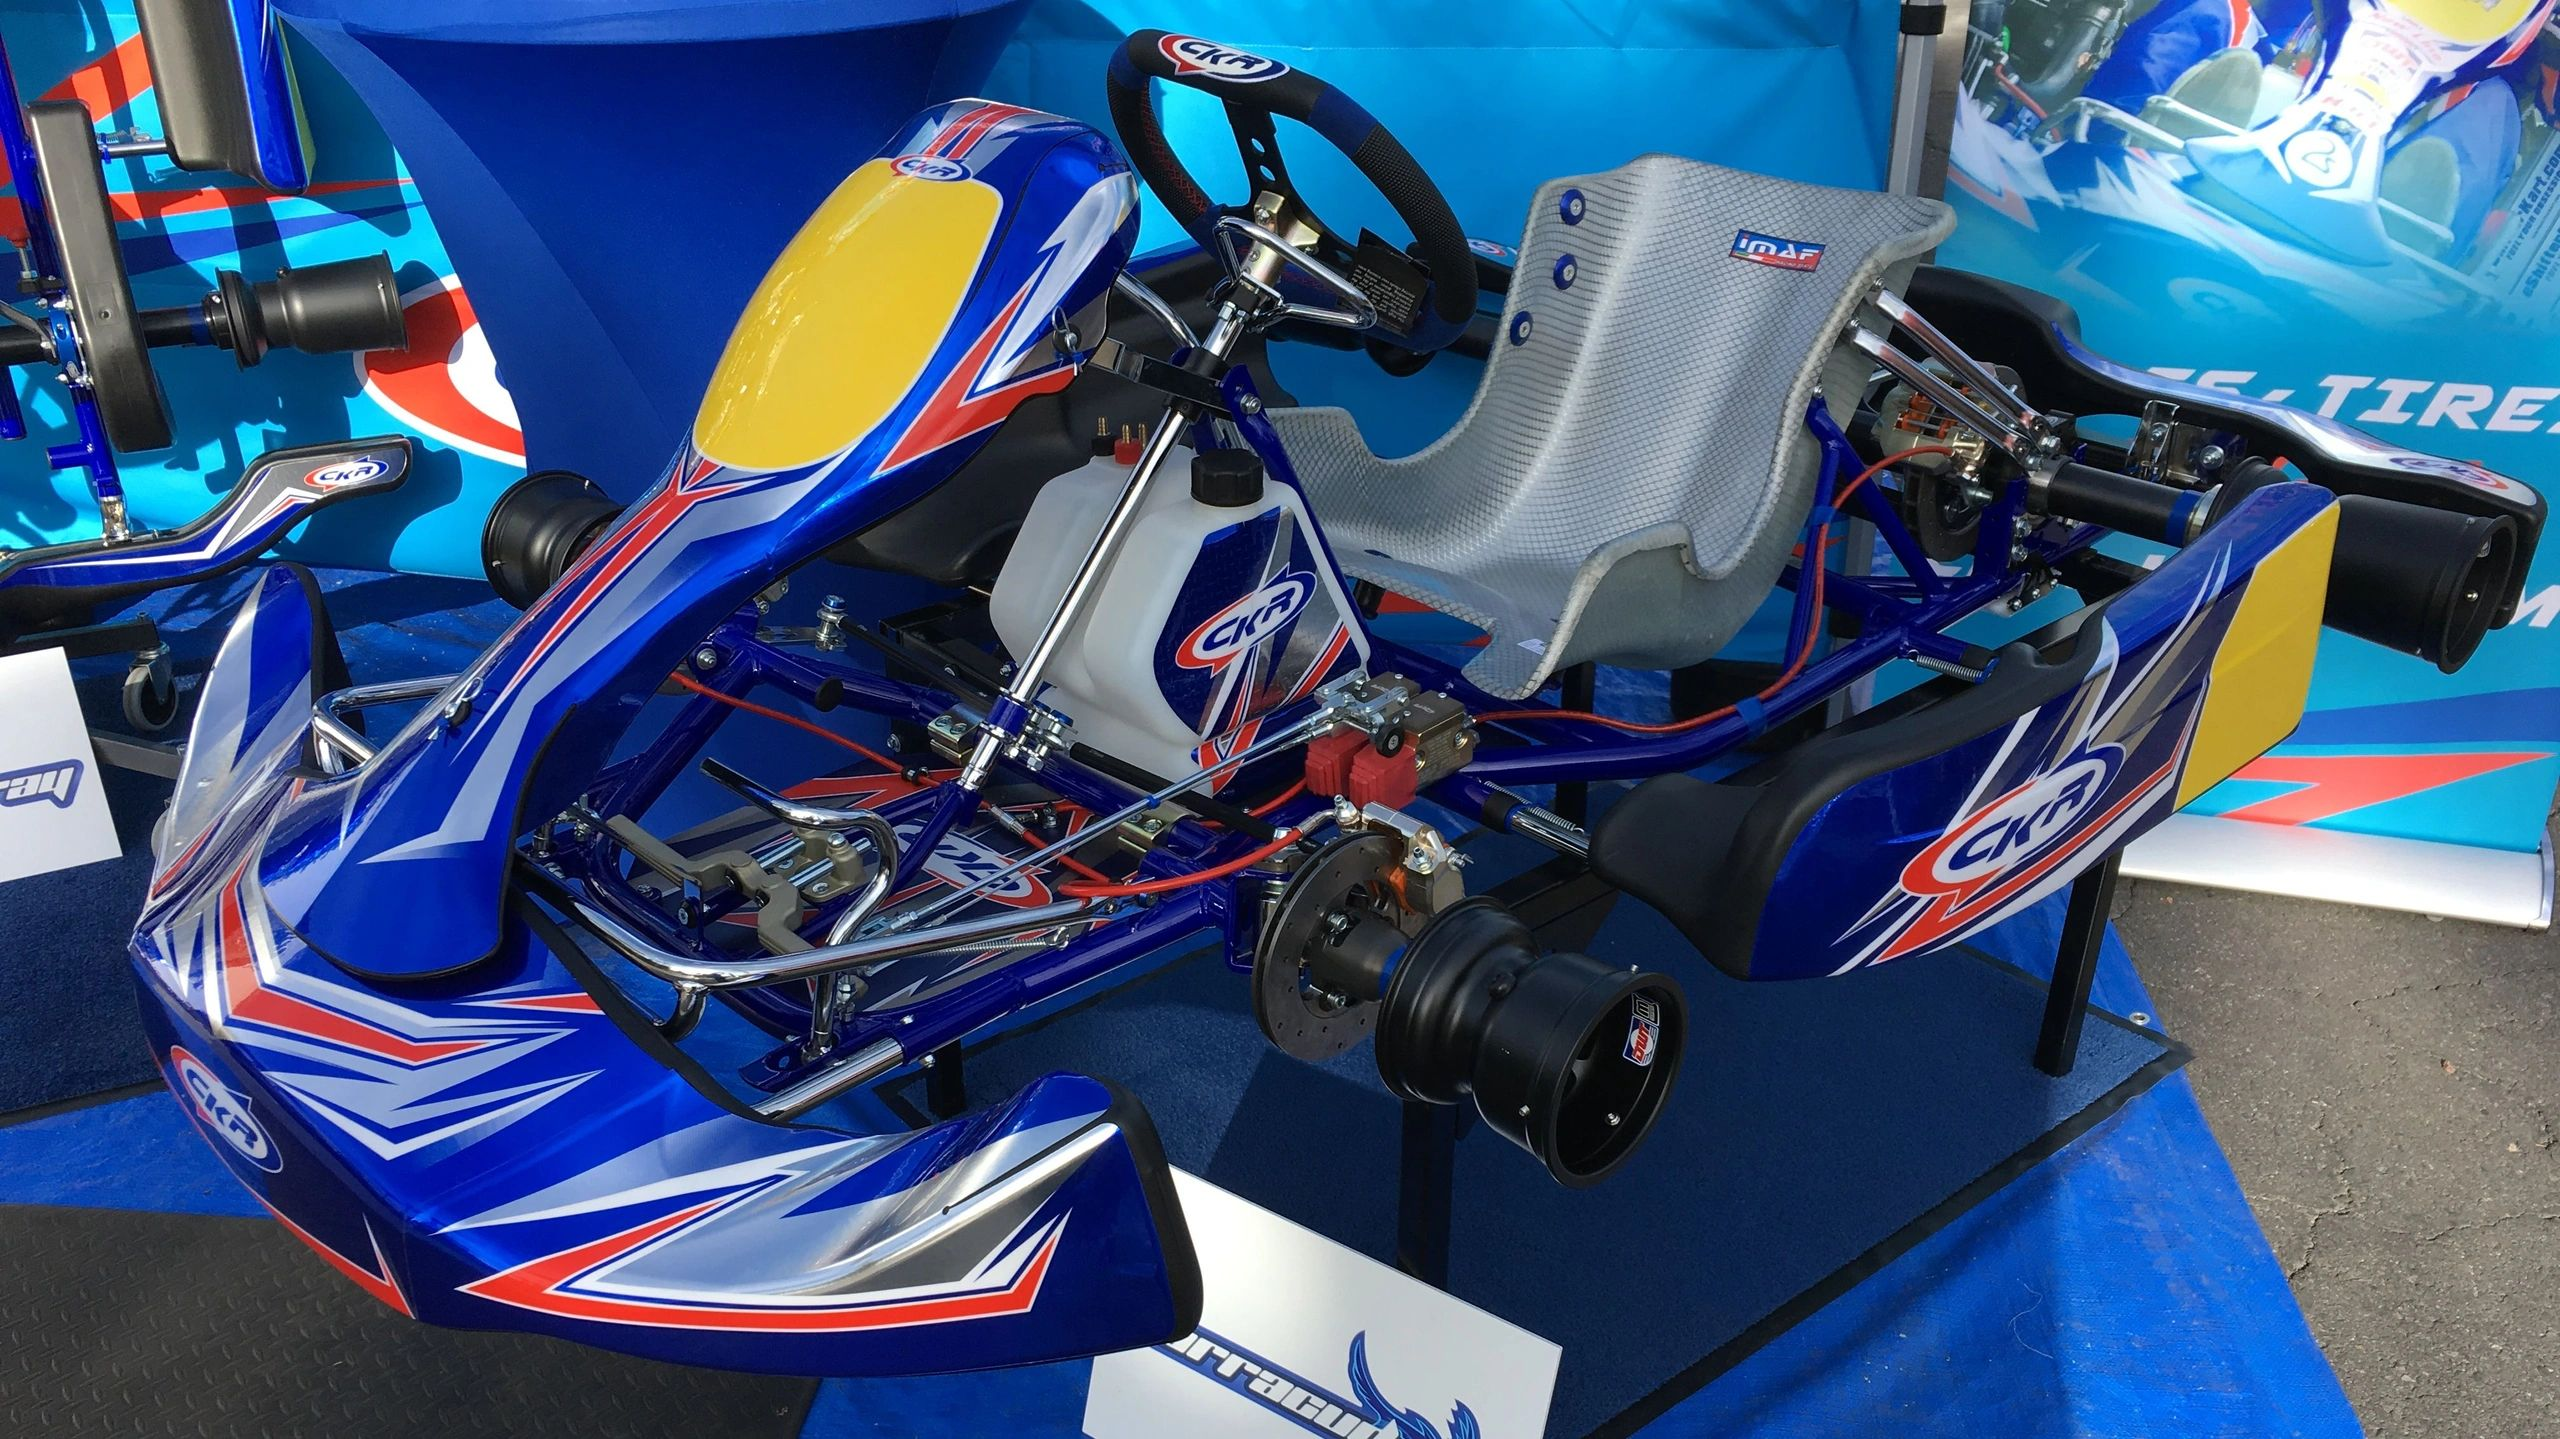 CKR Racing Kart Chassis Models - Shifter Kart KZ LO206 Kid ...